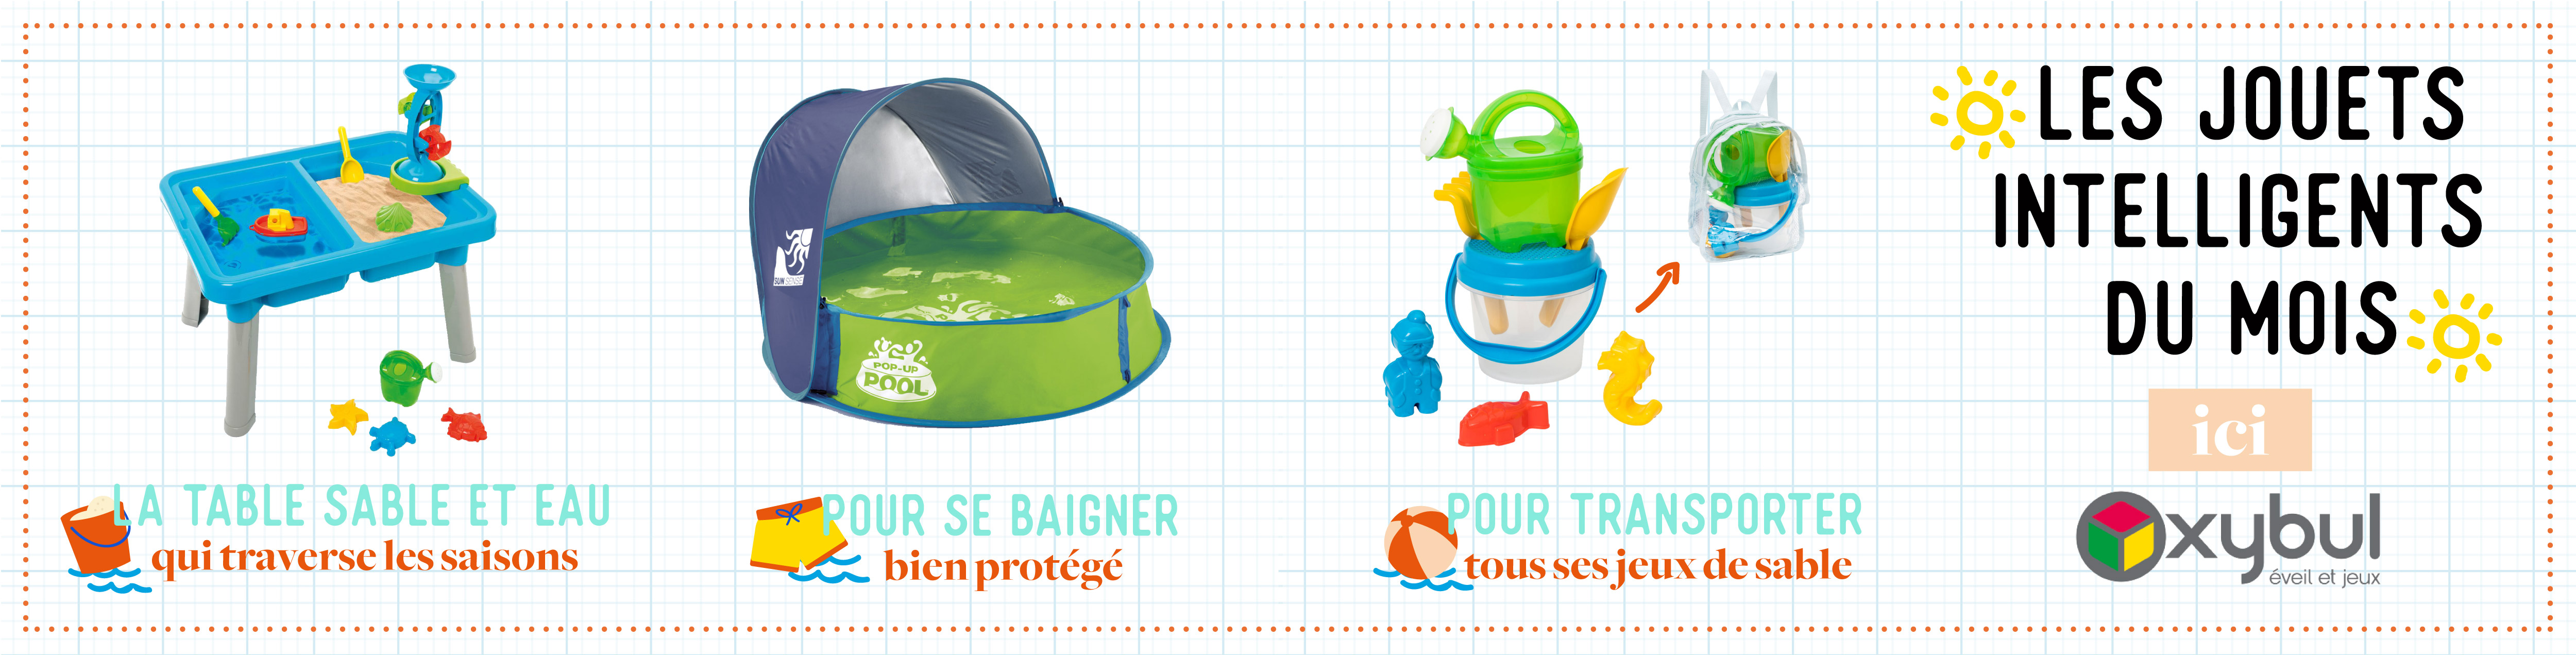 jouets intelligents juin